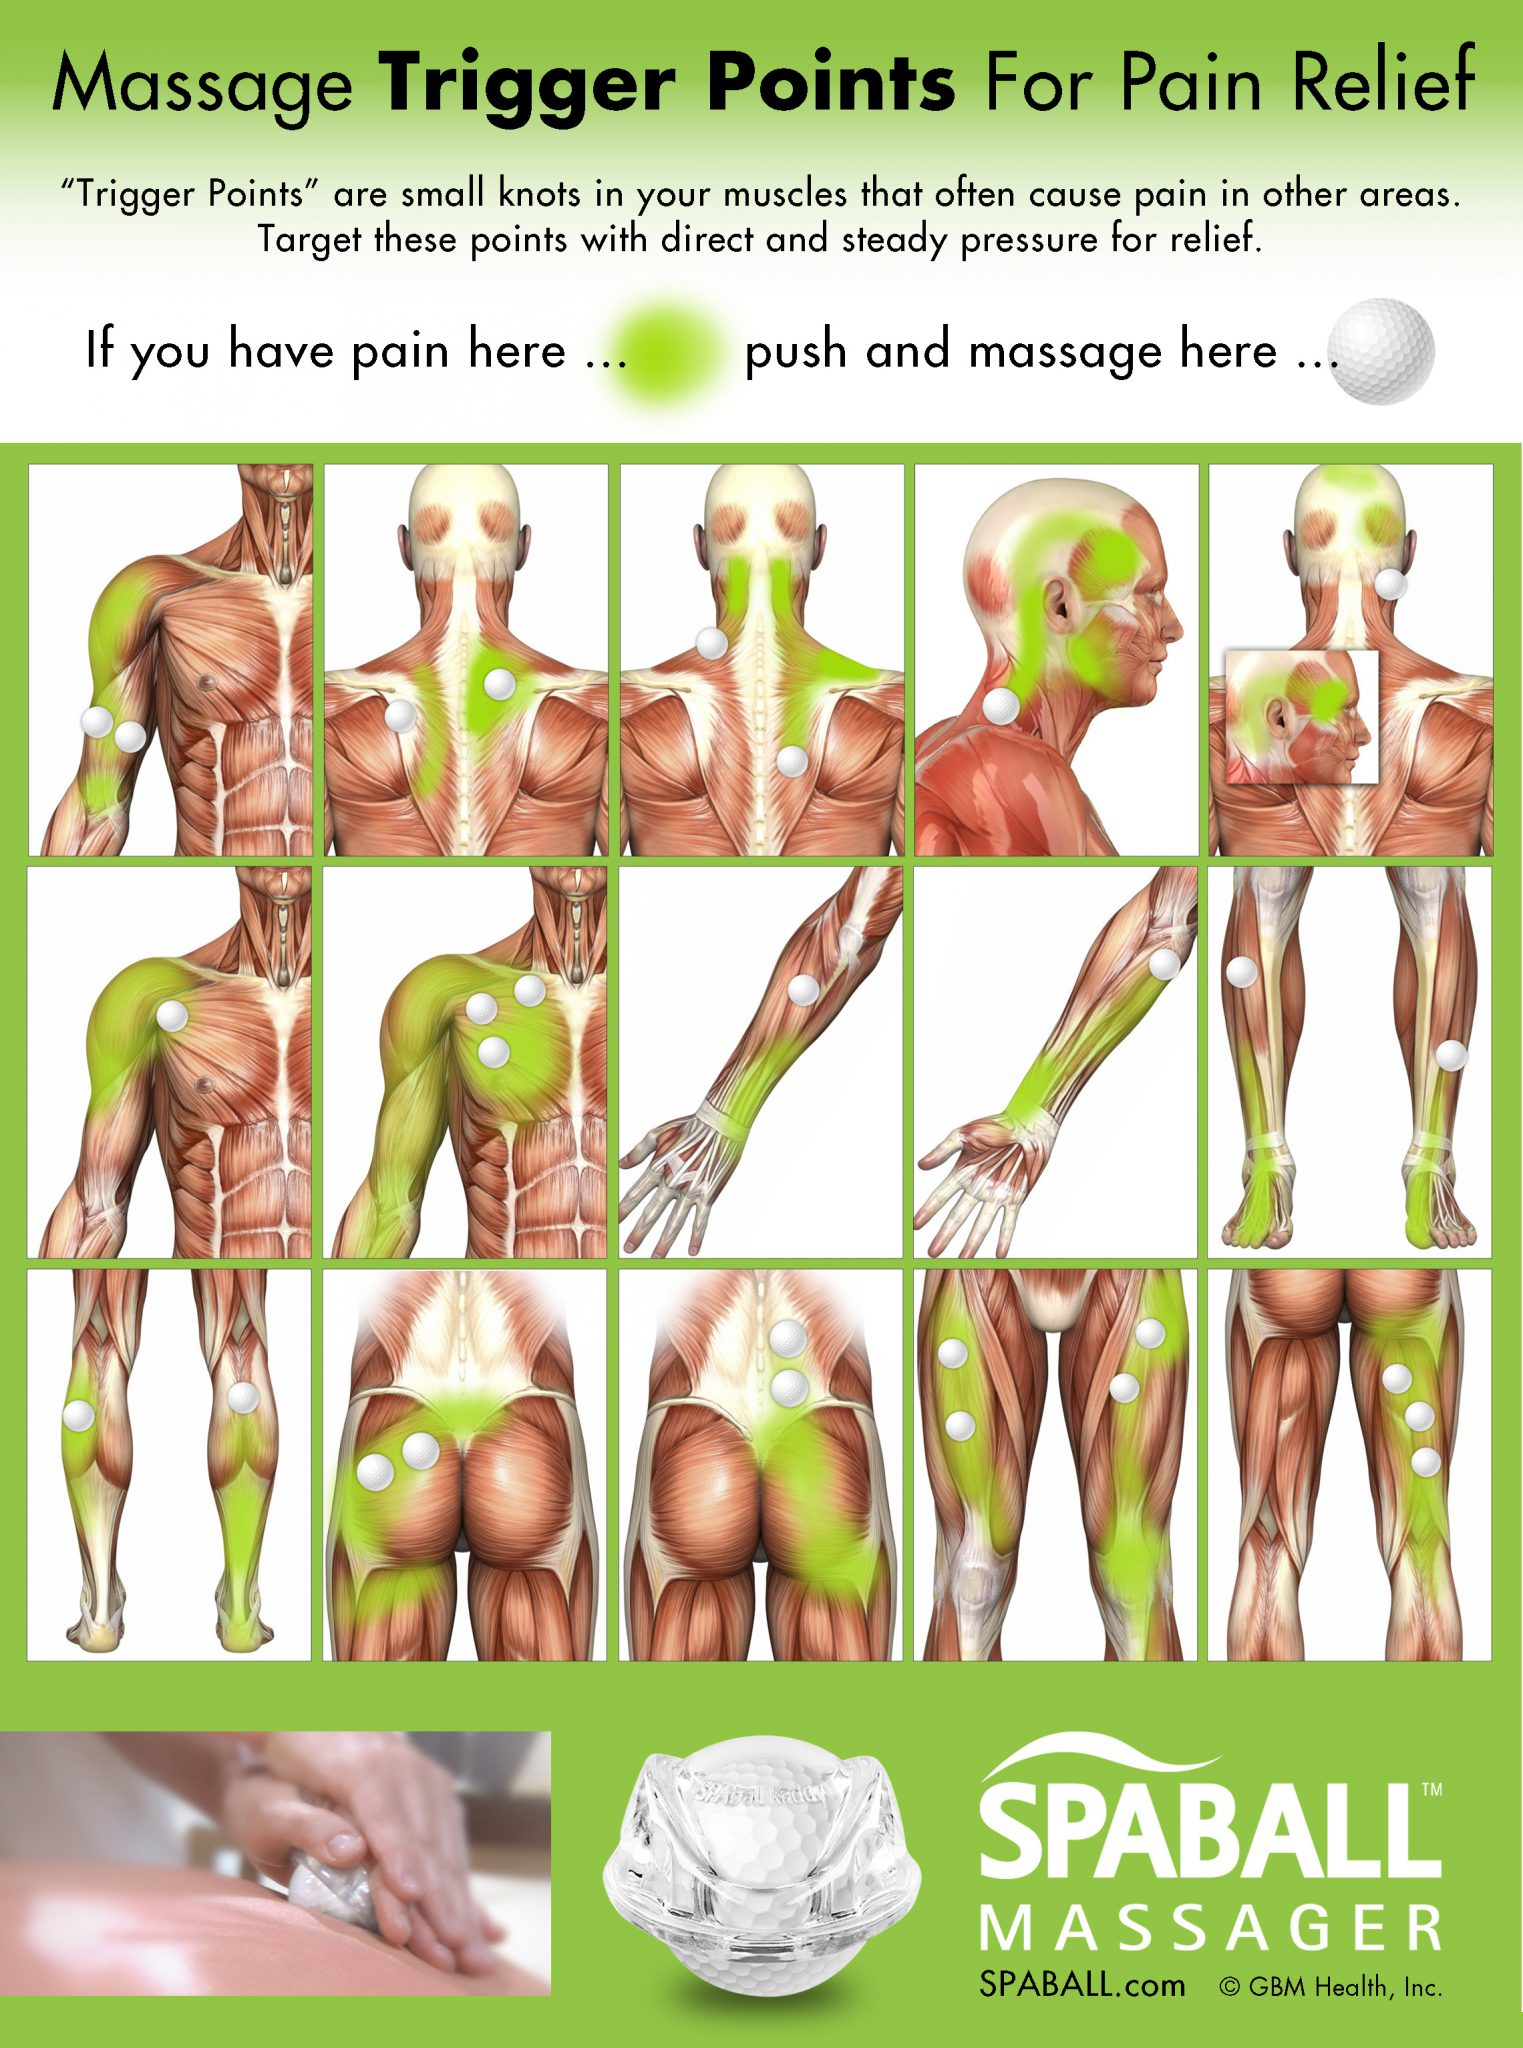 Massage Trigger Points For Pain Relief  Spaball Massager